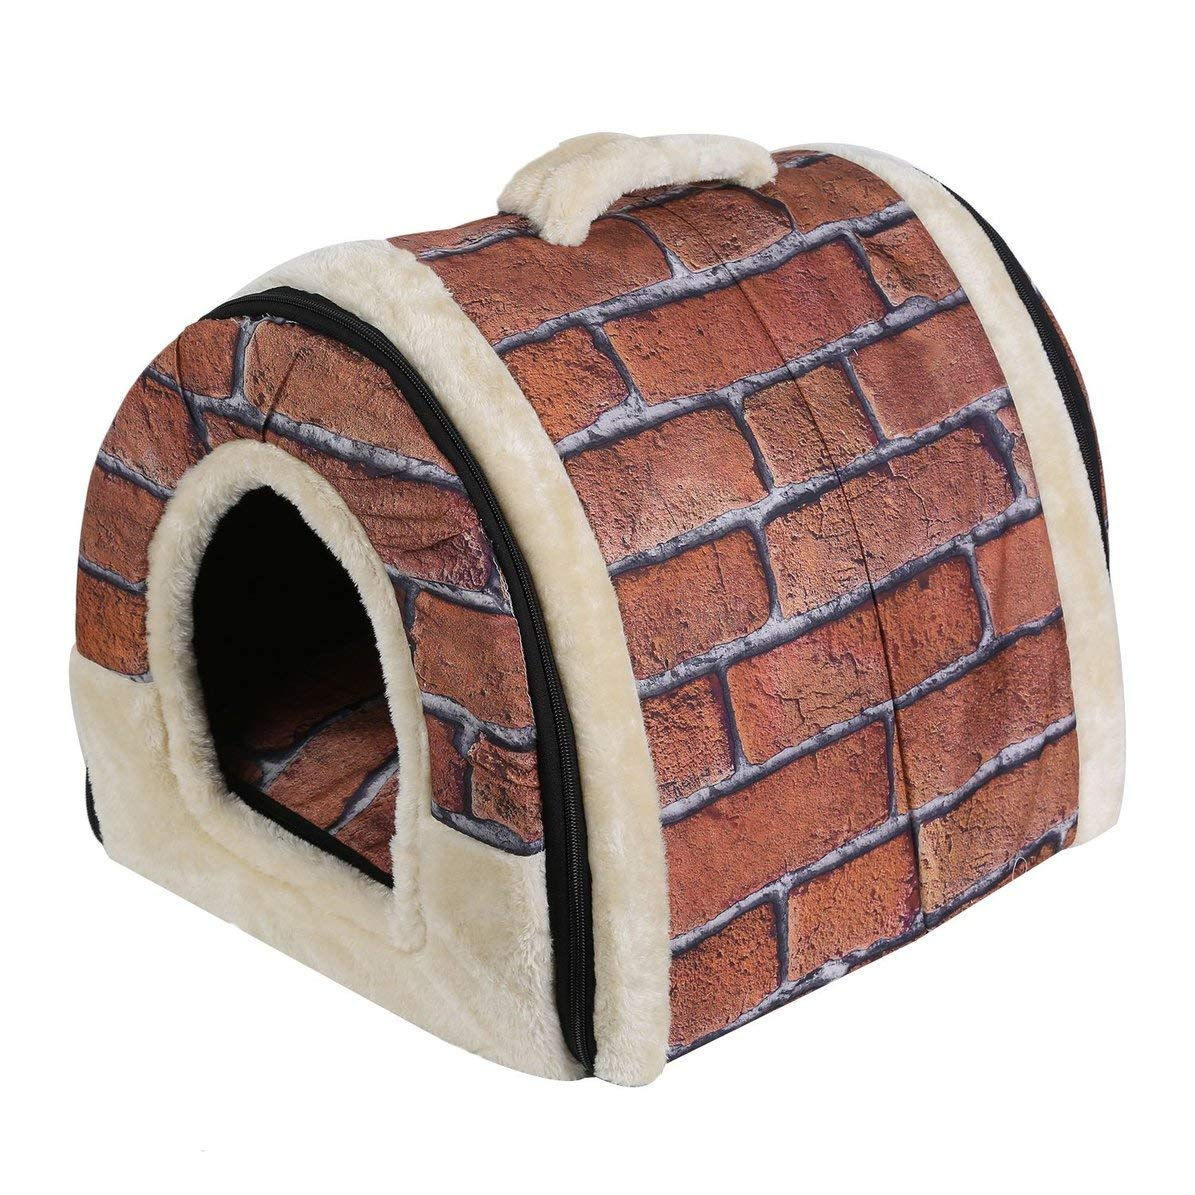 2 in 1 Pet House,Foldable Dog Puppy Cat House Kennel Nest, Soft Bed with Mat for Small Medium Pet Comfortable Travel Bed Tent,74  38  36CM